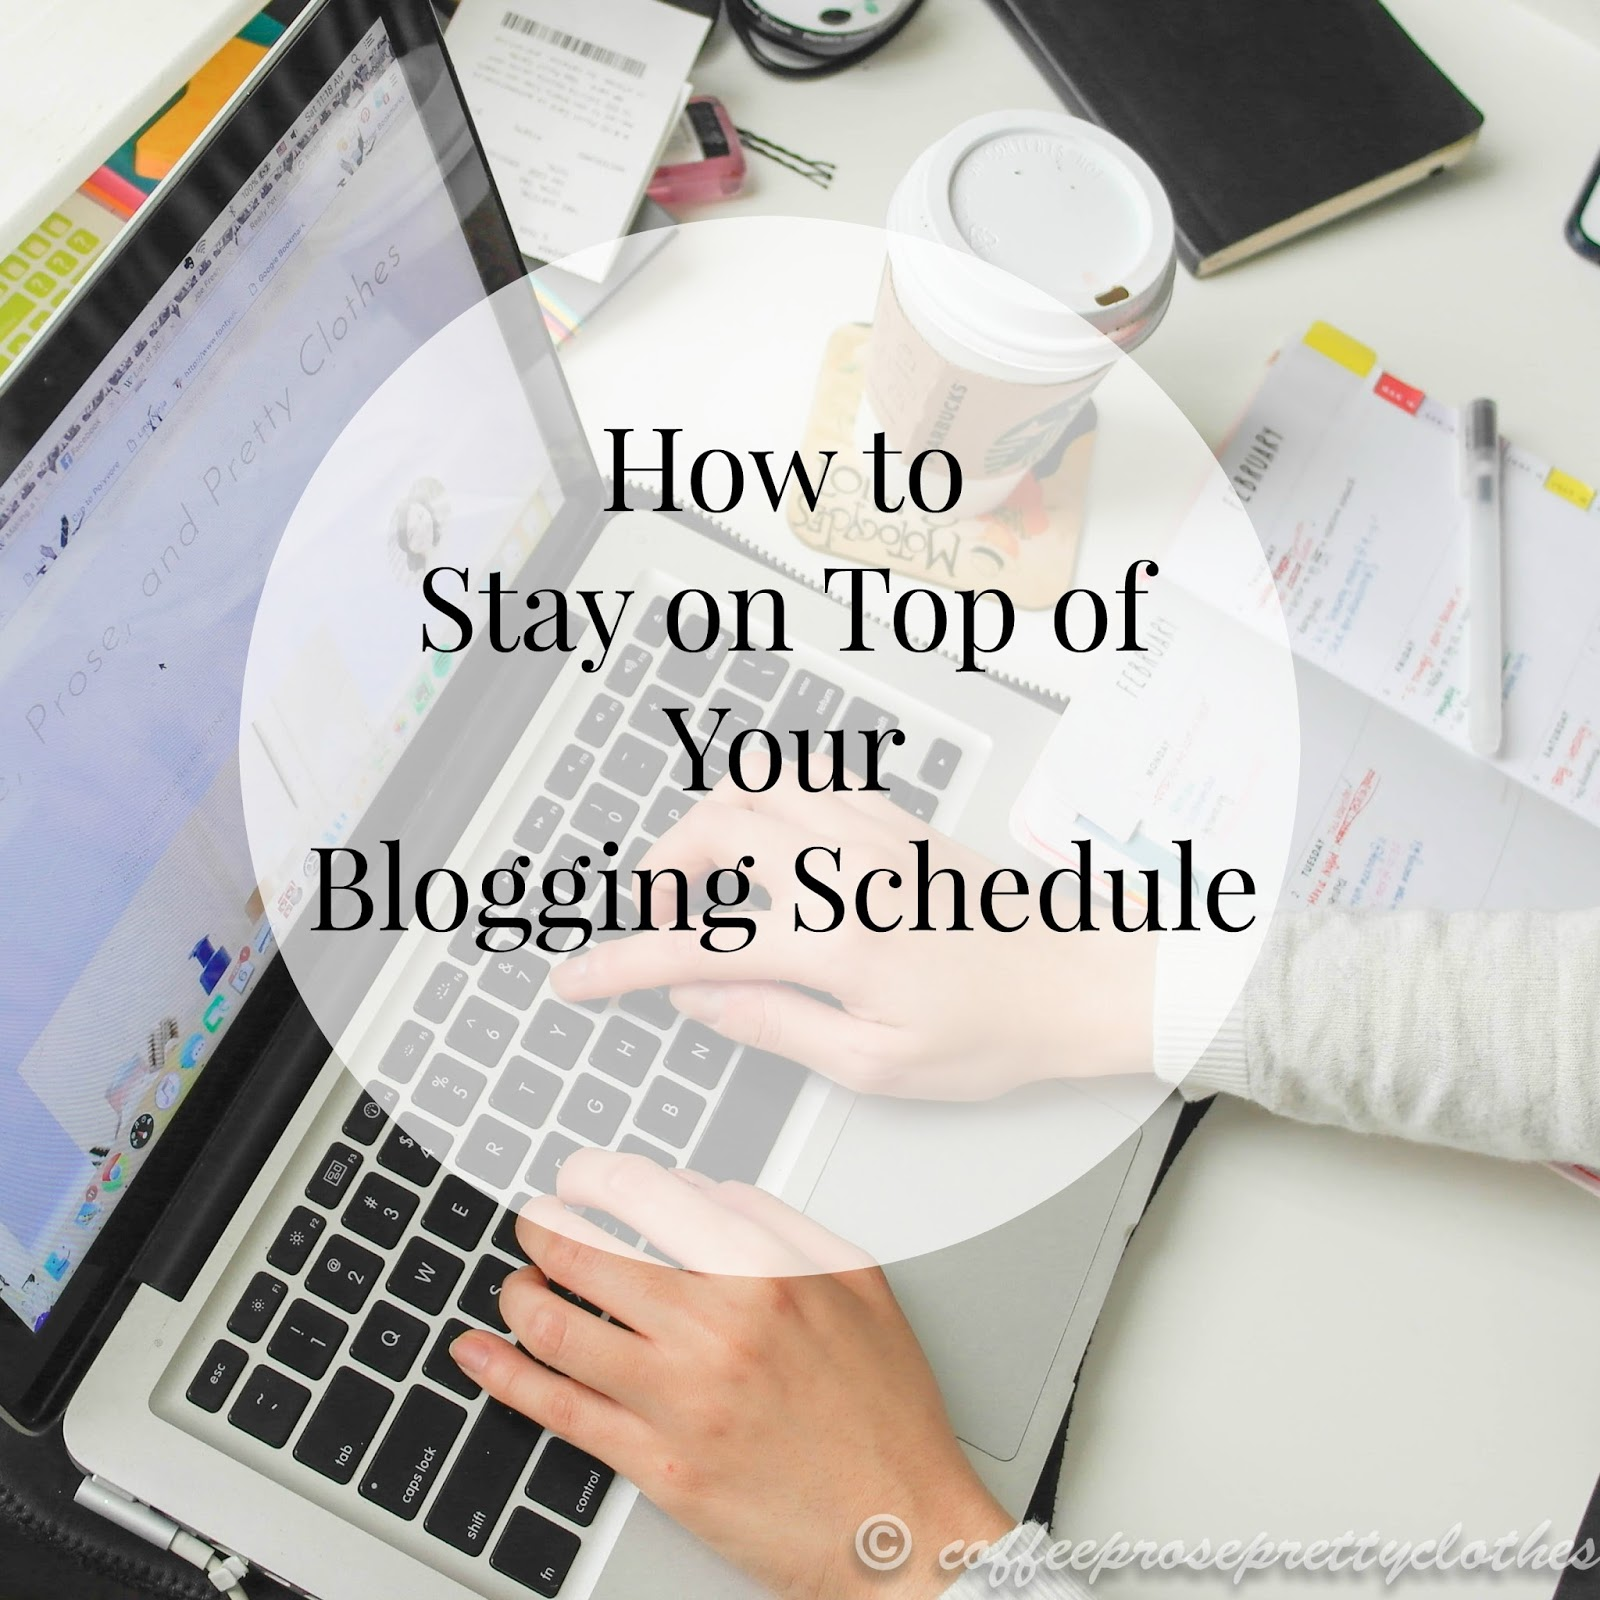 How to Stay on Top of Your Blogging Schedule